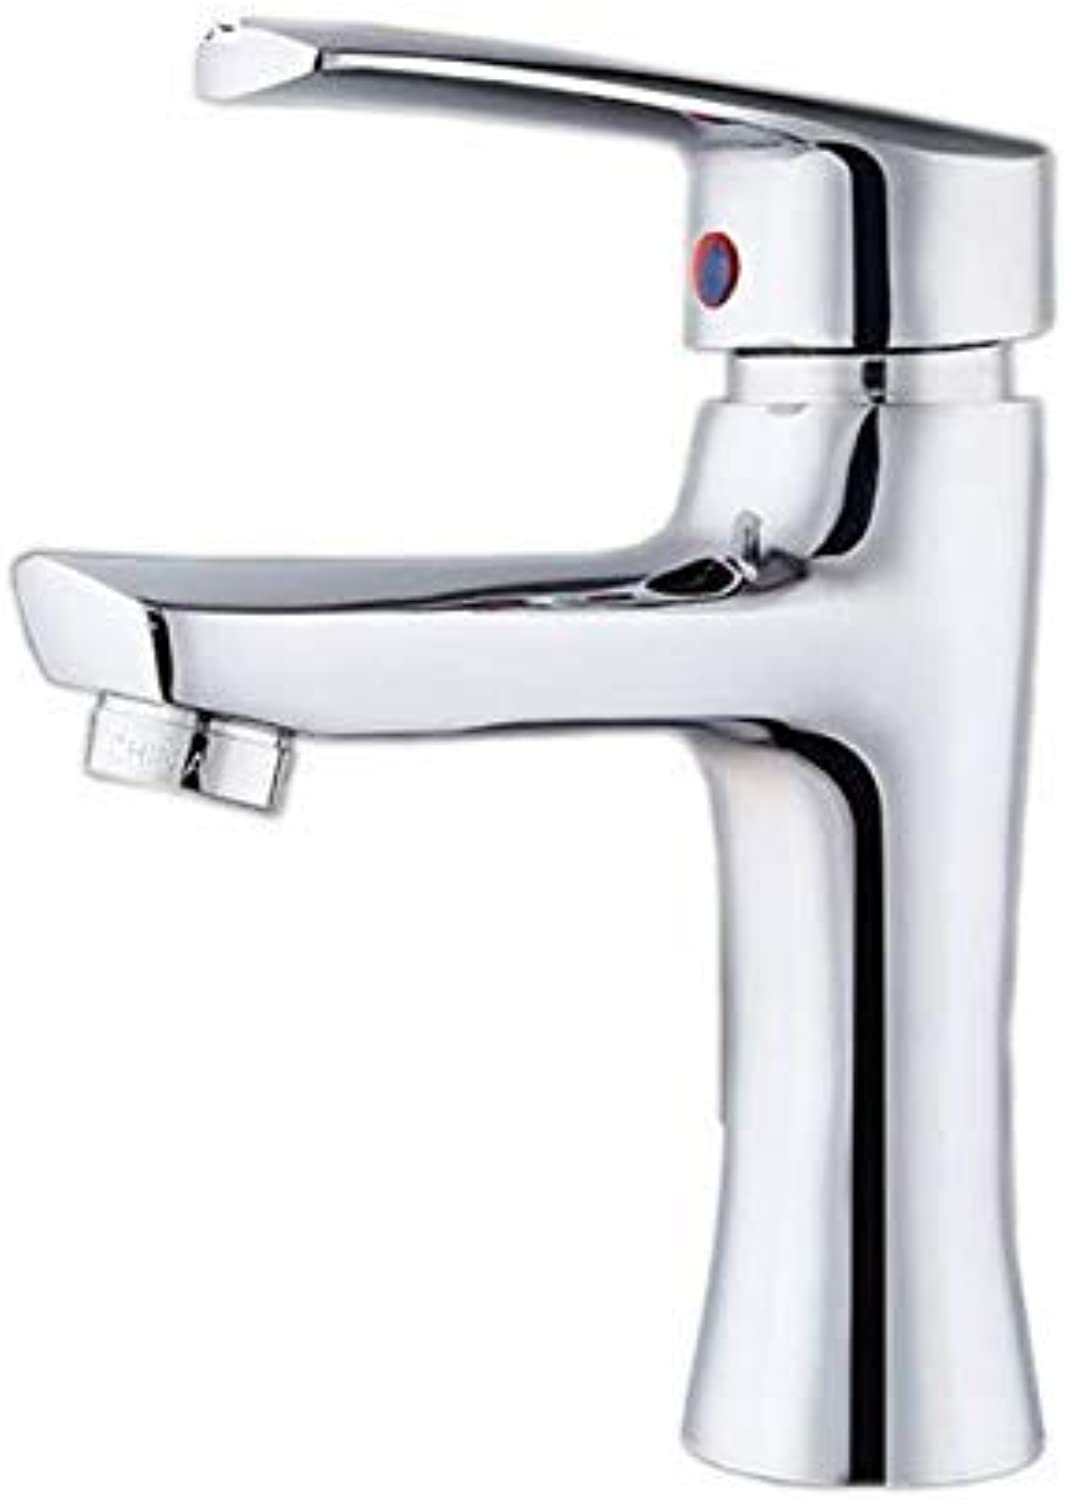 MONFS-Bathroom tap Taps Jade Single Hole Faucet Hot And Cold Washbasin Faucet Copper Mixer Taps